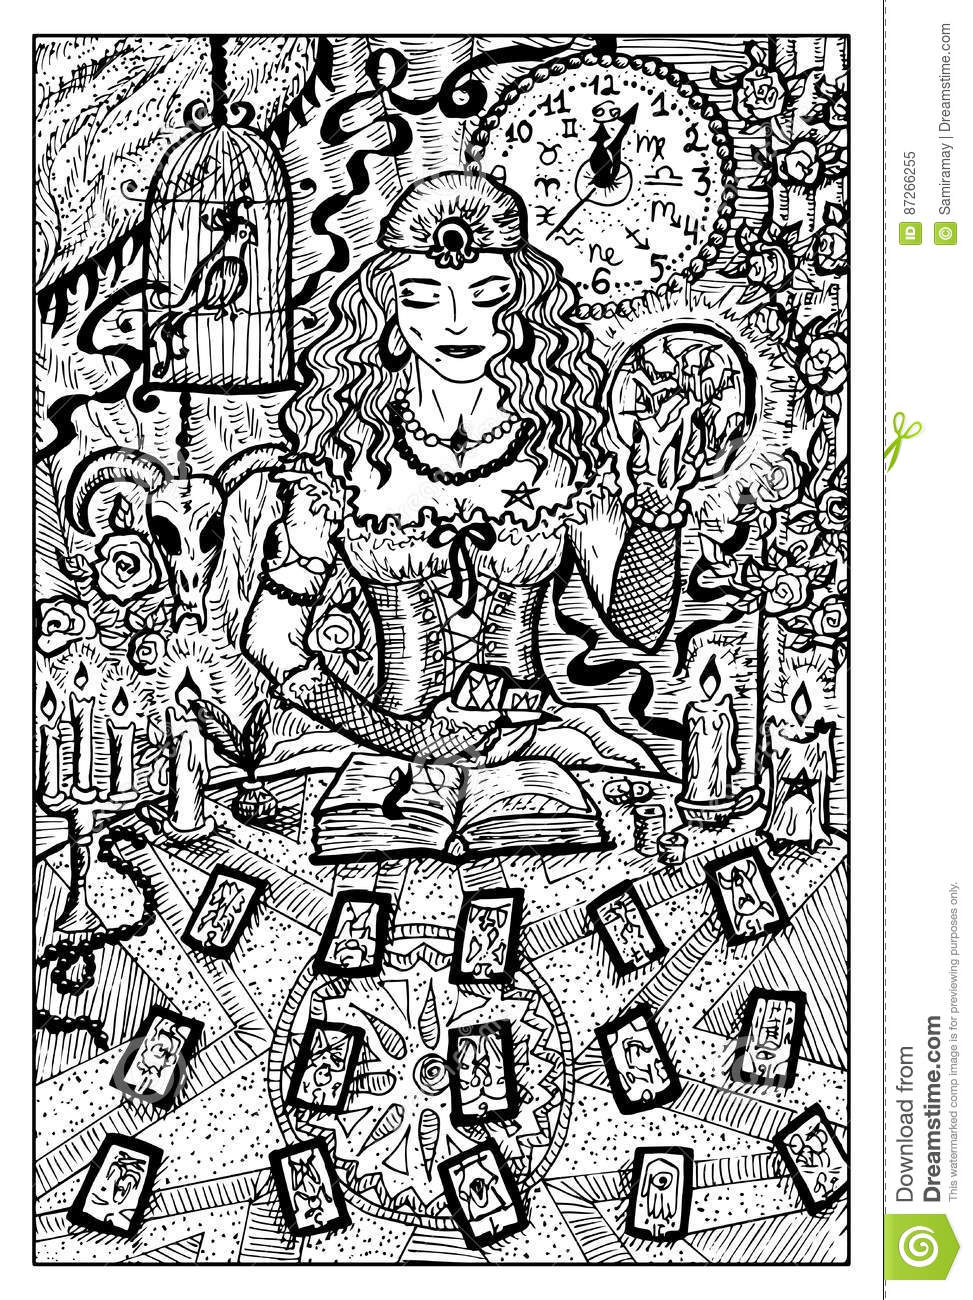 Fortune Teller With Tarot Cards, Hand Drawn Illustration